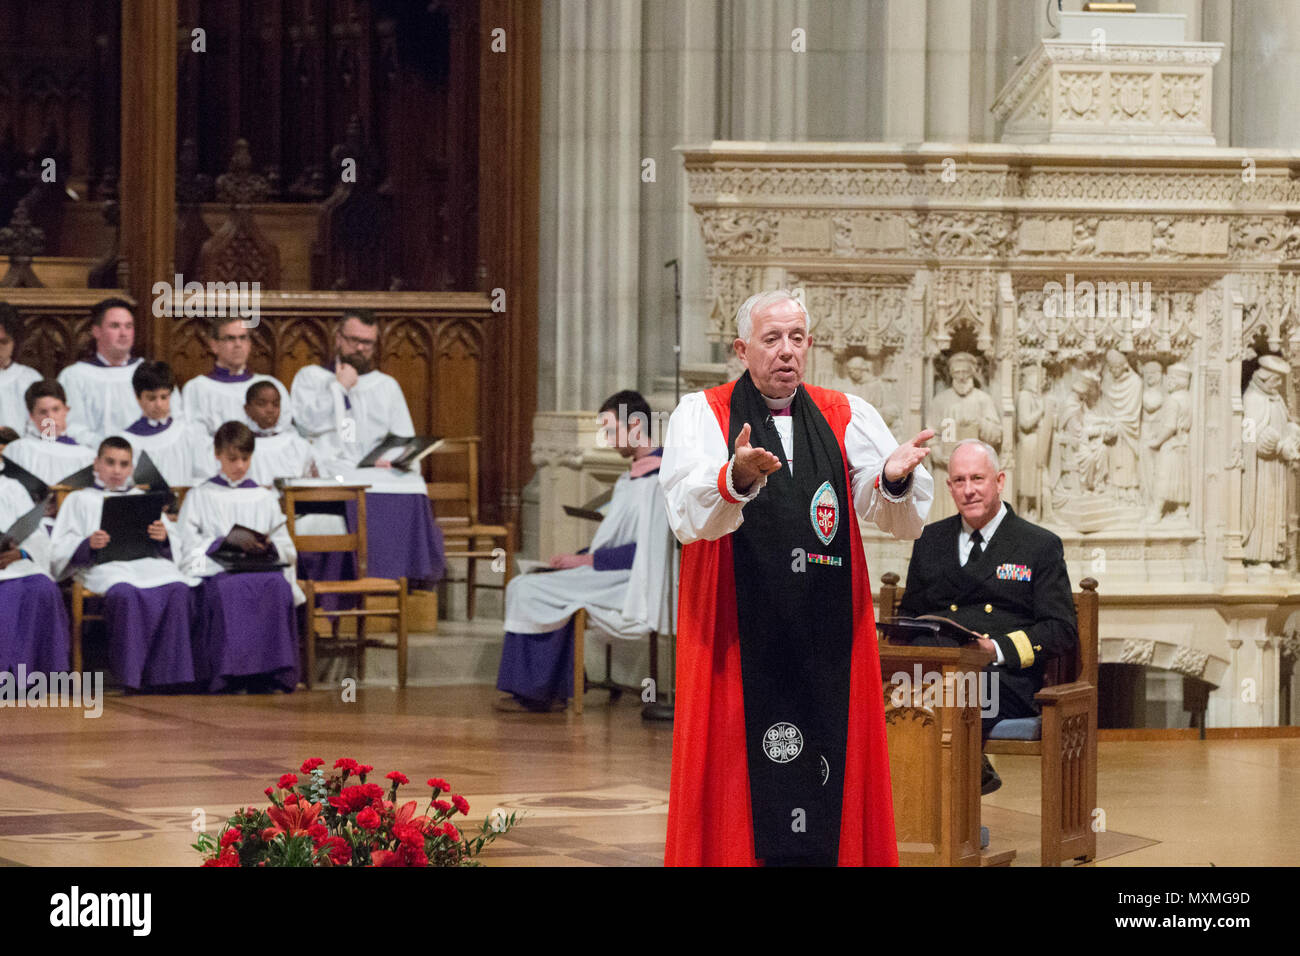 Reverend James B. Magness, bishop suffragan for Armed Services and Federal Ministries, welcomes guests to the Marine Corps Worship Service at the Washington National Cathedral, Washington, D.C., Nov. 13, 2016. The worship service honored the 241st anniversary of the Marine Corps. (U.S. Marine Corps photo by Lance Cpl. Daisha R. Sosa) - Stock Image